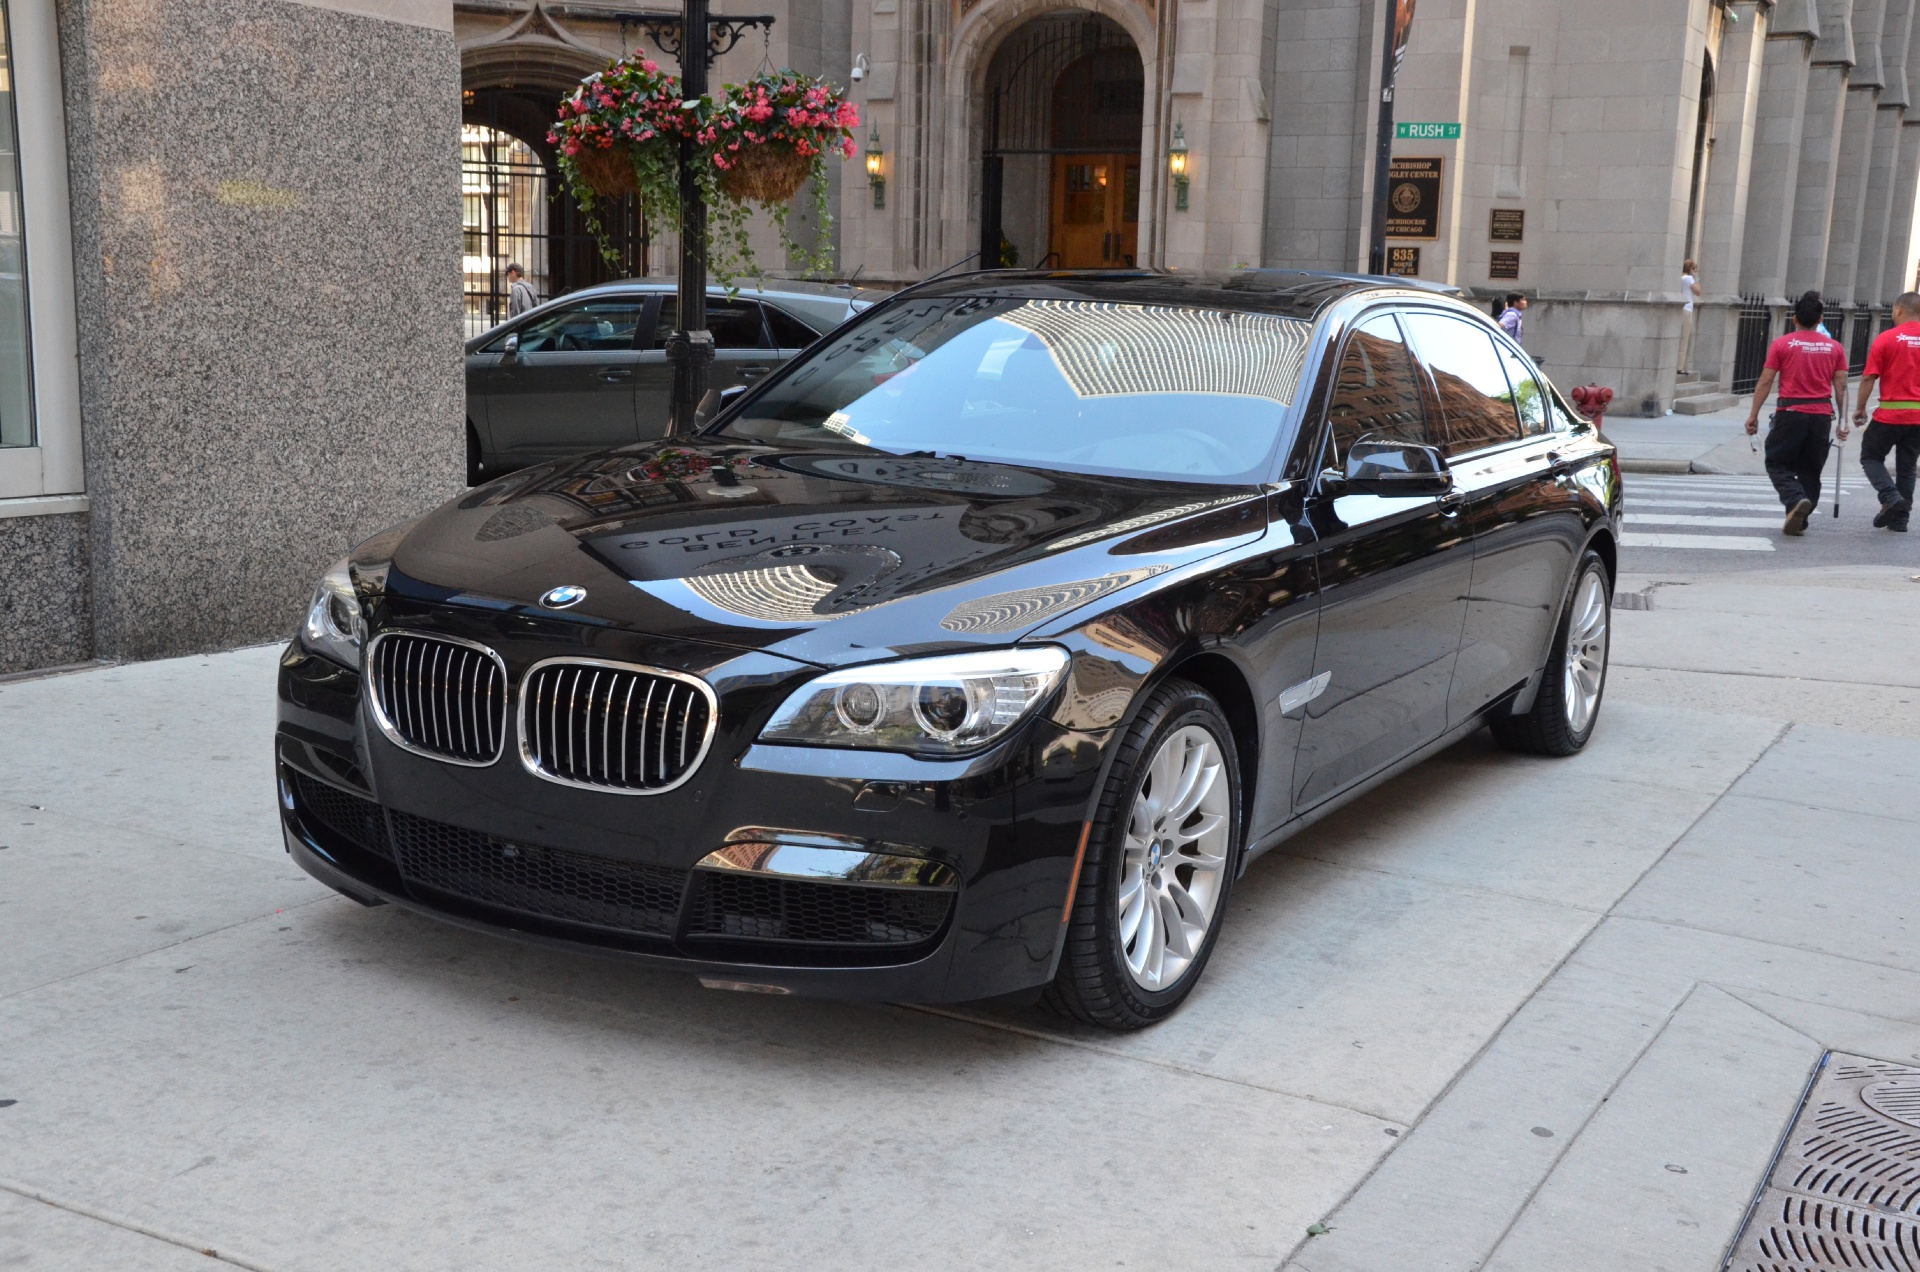 2013 bmw 7 series 750li xdrive stock b621a for sale near chicago il il bmw dealer. Black Bedroom Furniture Sets. Home Design Ideas